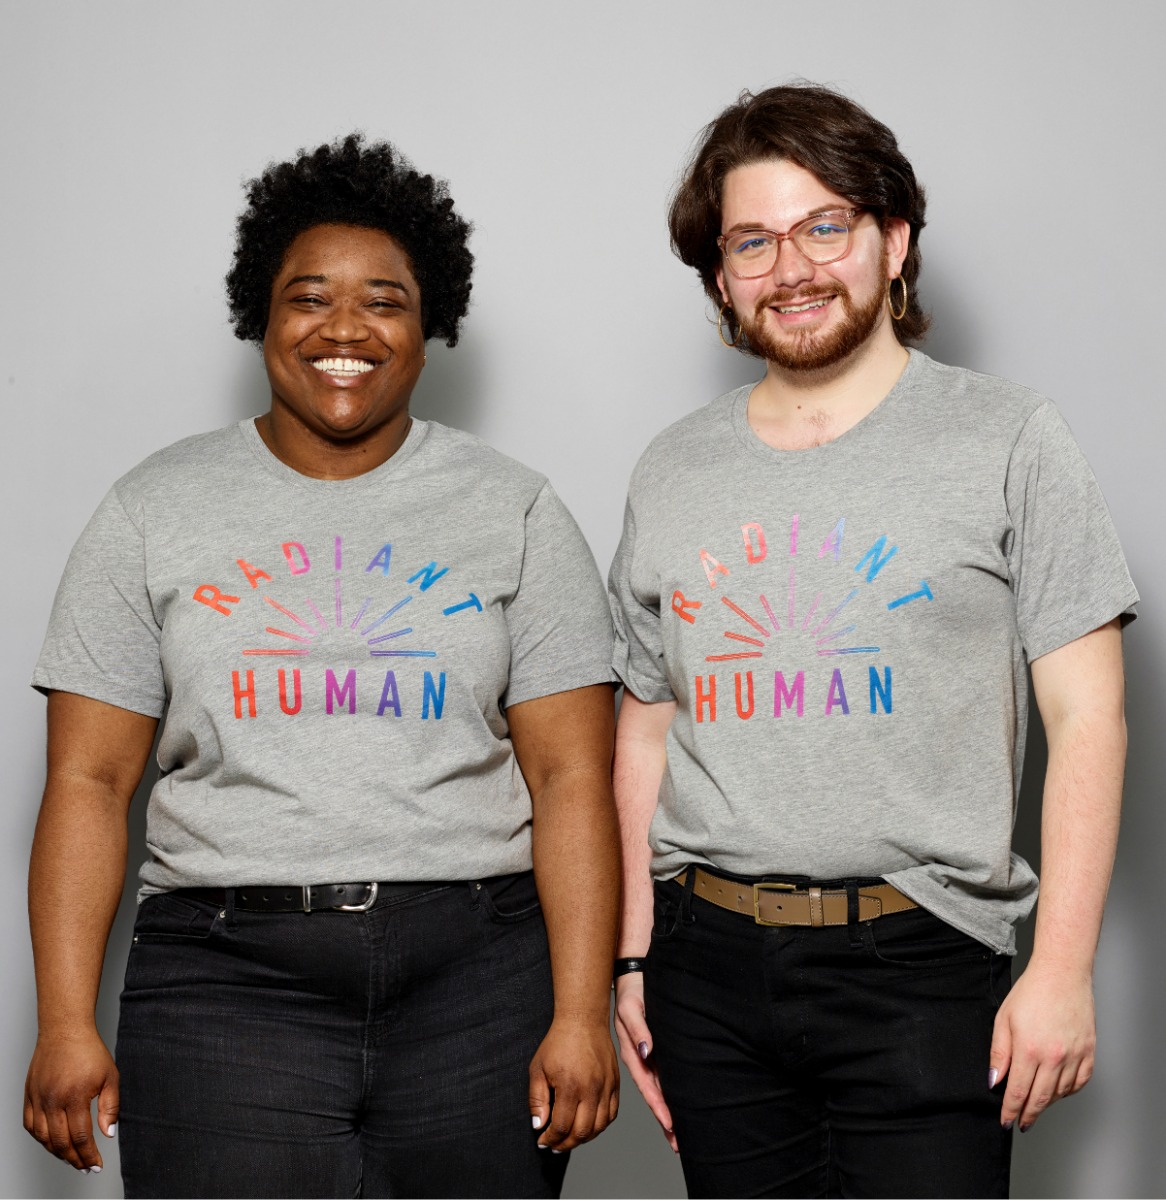 Two models wearing grey shirts with Radiant Human across chest